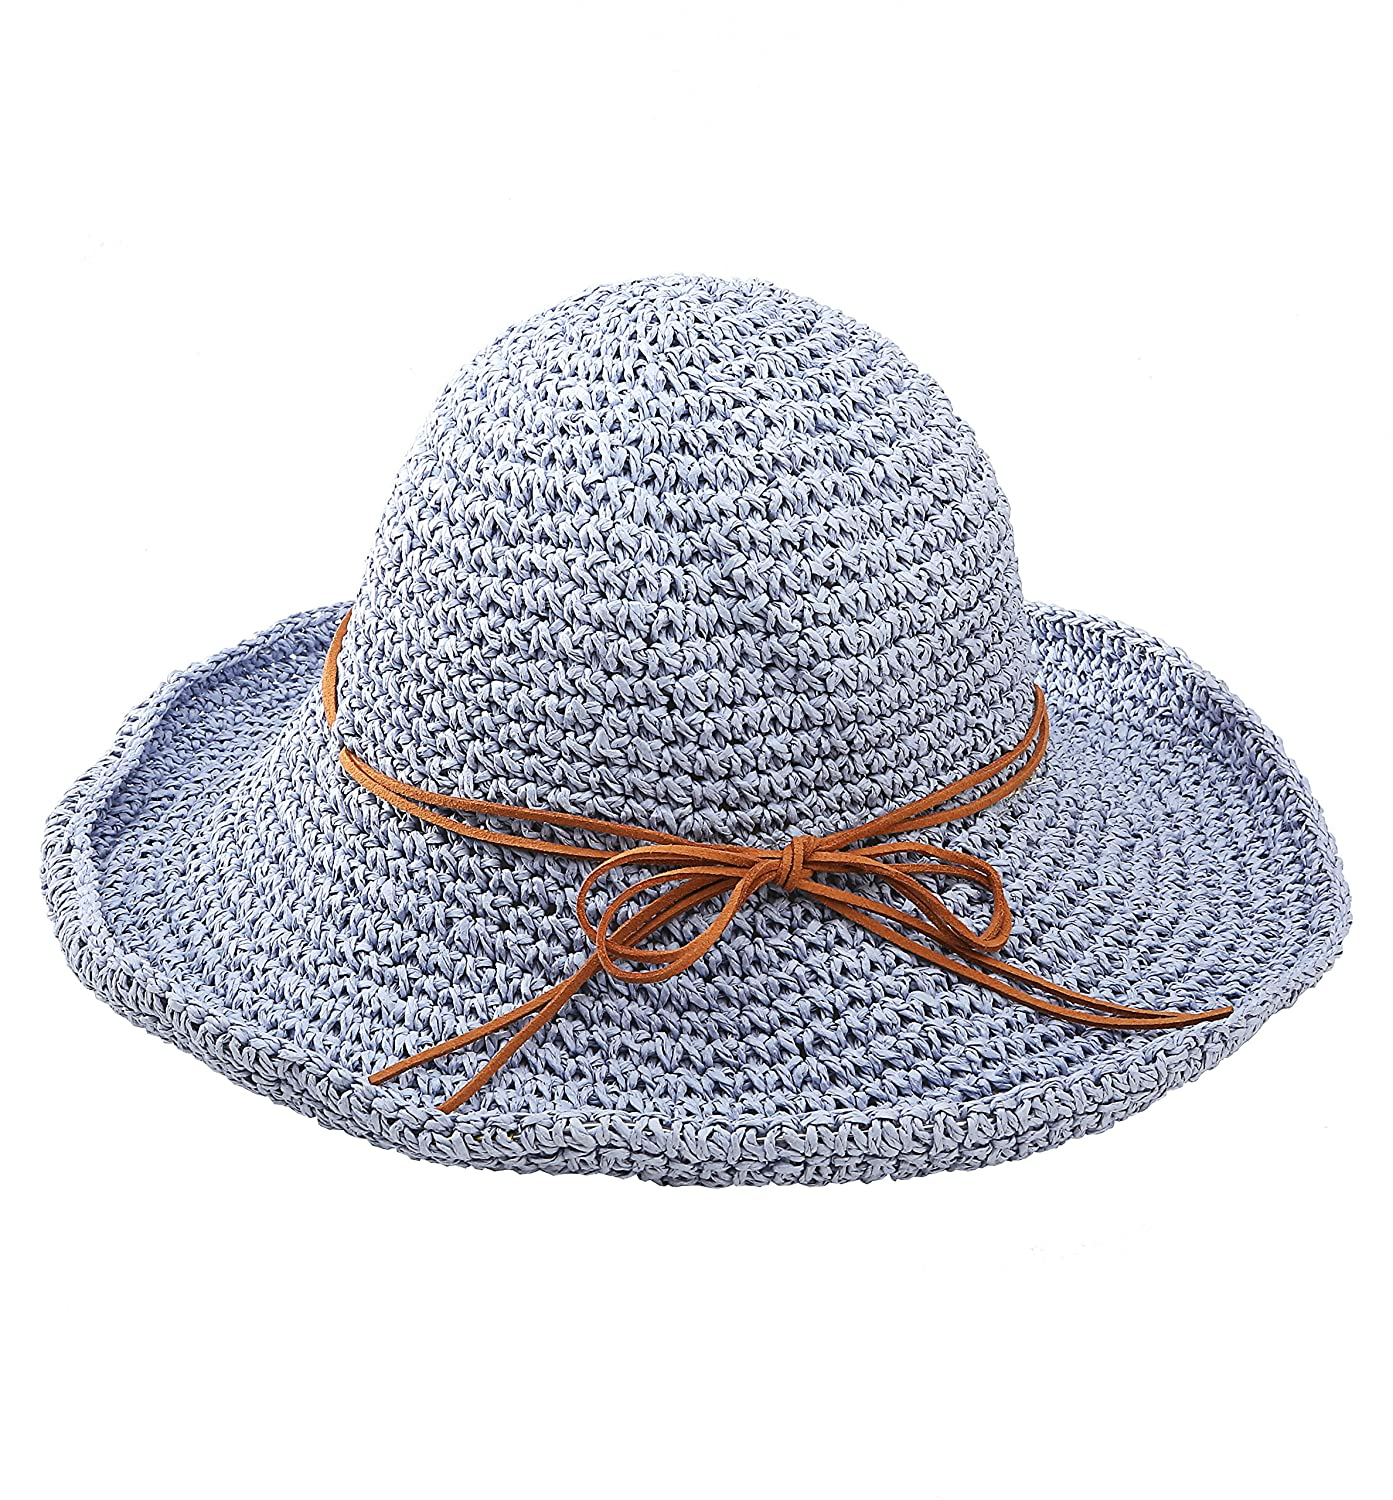 Urban CoCo Women's Wide Brim Caps Foldable Summer Beach Sun Straw Hats LSALC04BE